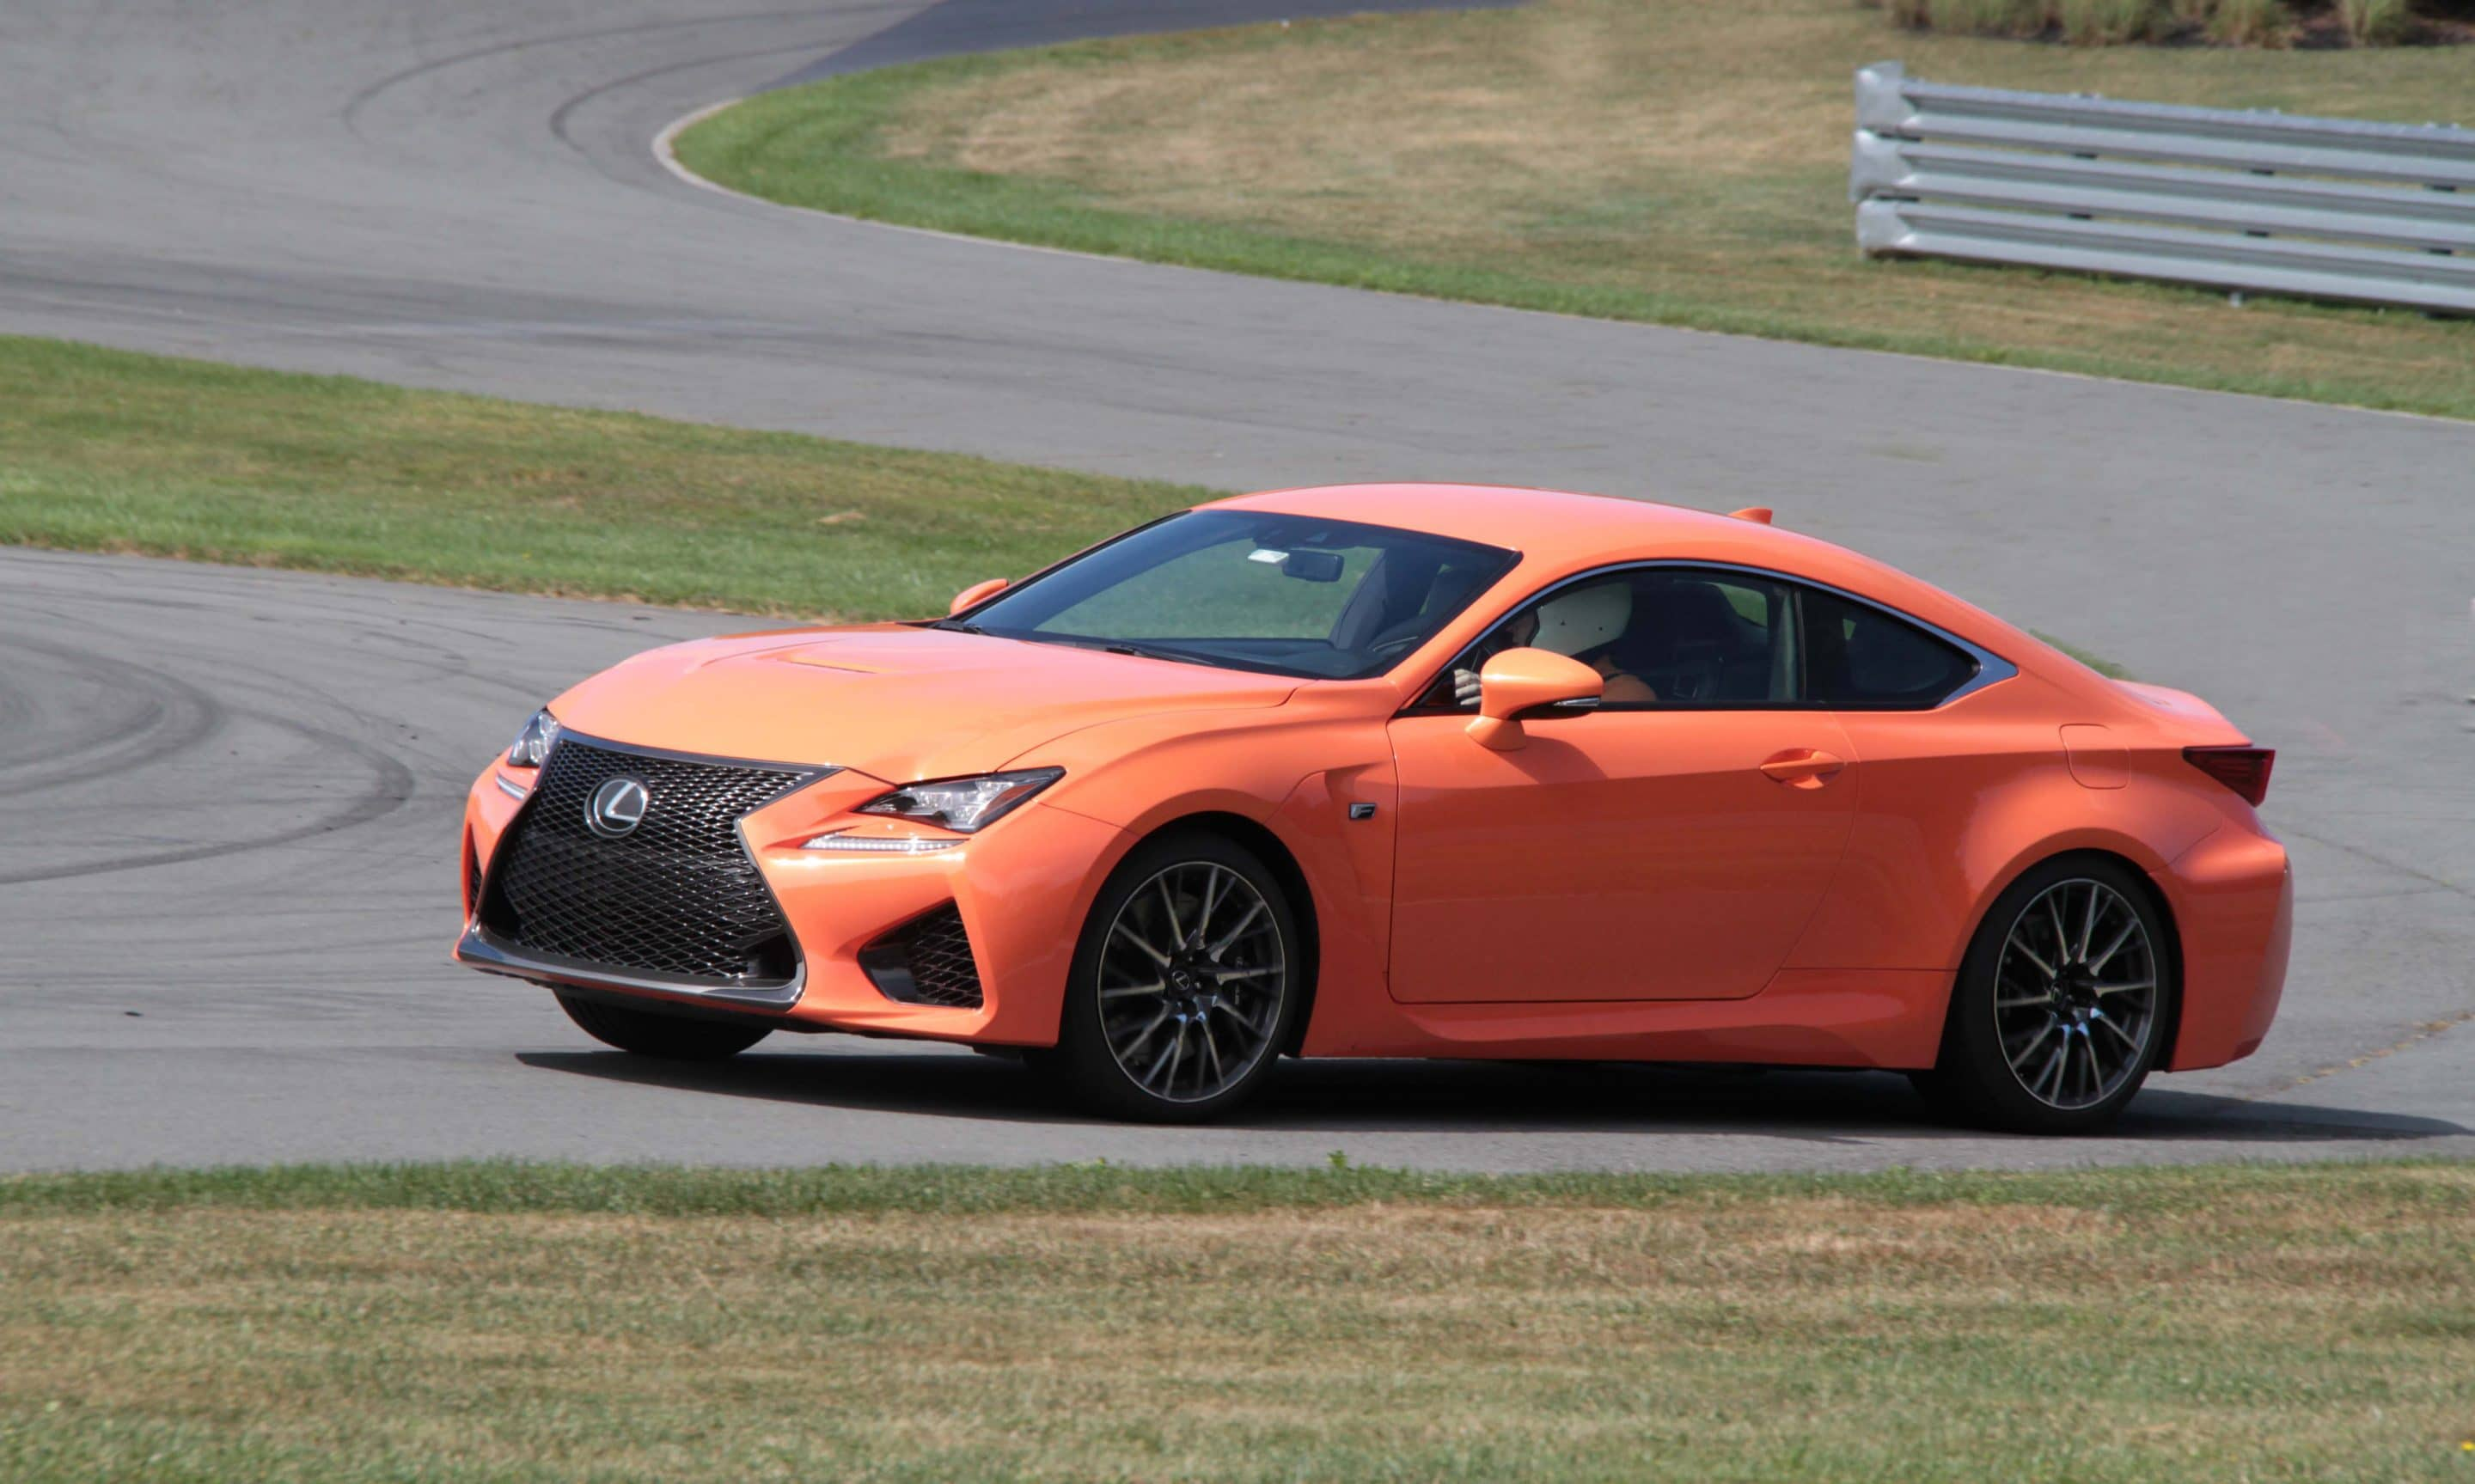 http://www.thedetroitbureau.com/wp-content/uploads/2014/09/2015-Lexus-RC-F-on-track.jpg